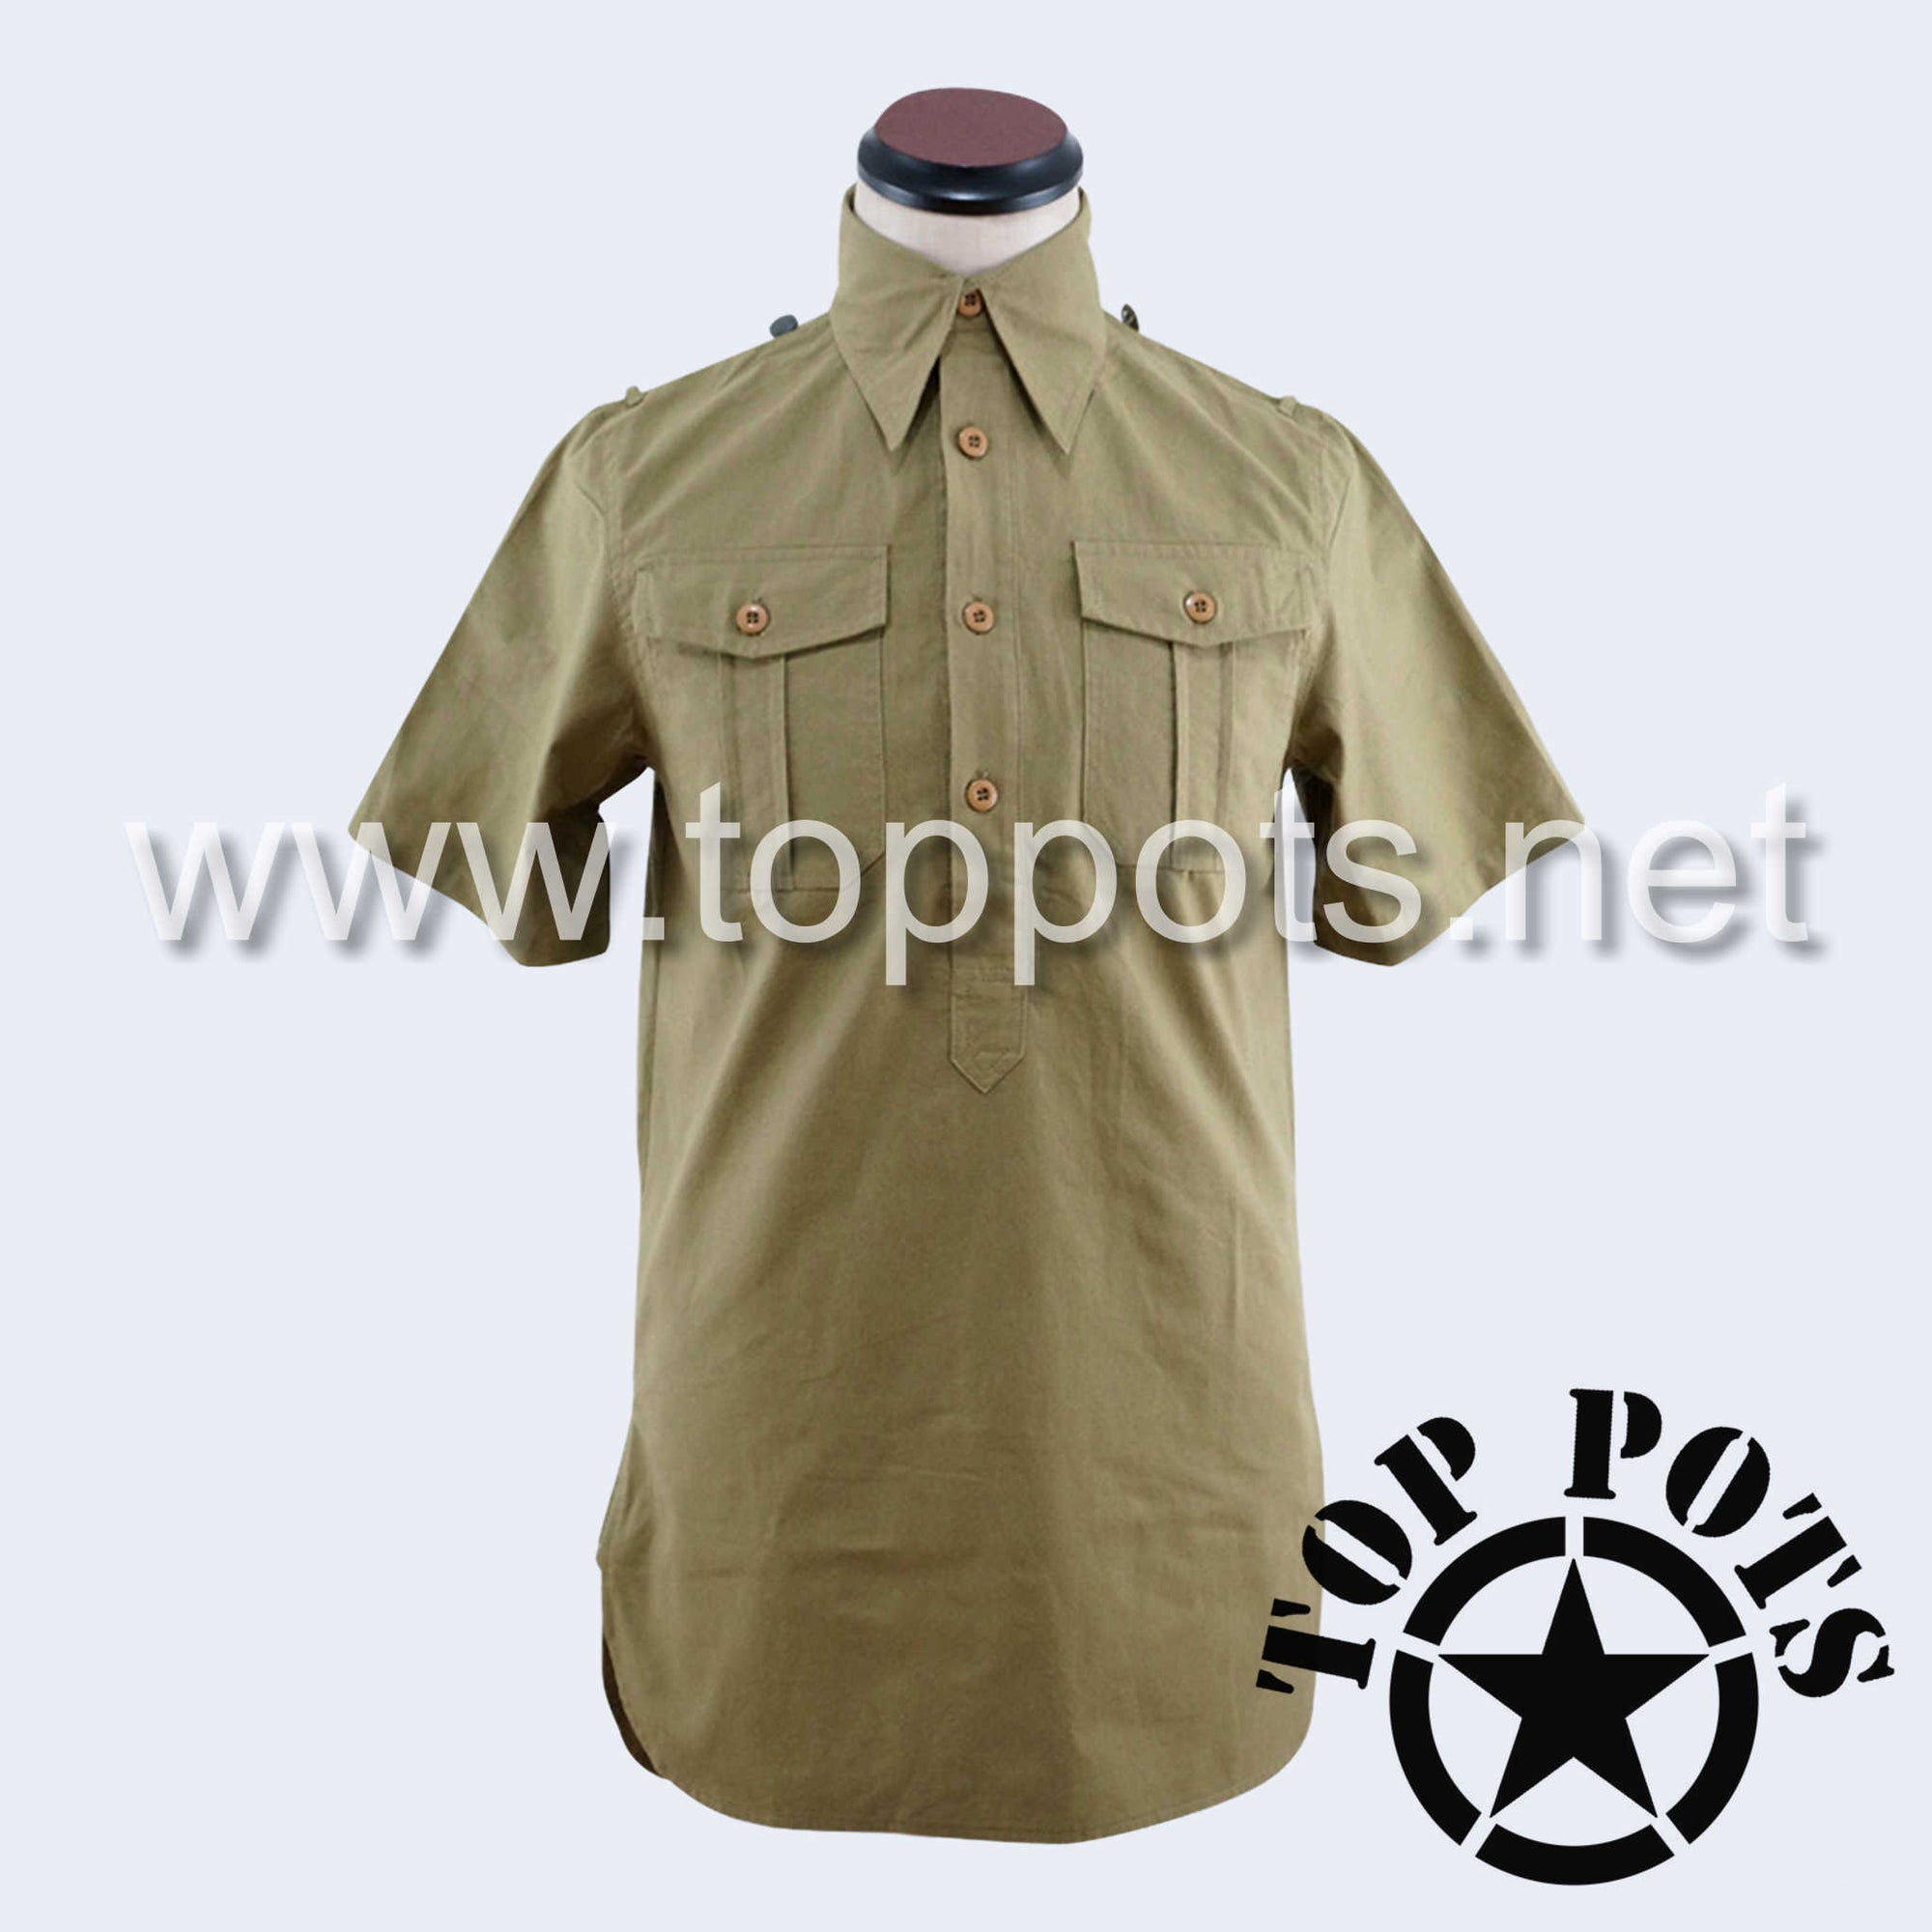 WWII German Army Waffen SS Uniform Short Sleeve Service Shirt - Mediterranean Tropical Sand Khaki Tan